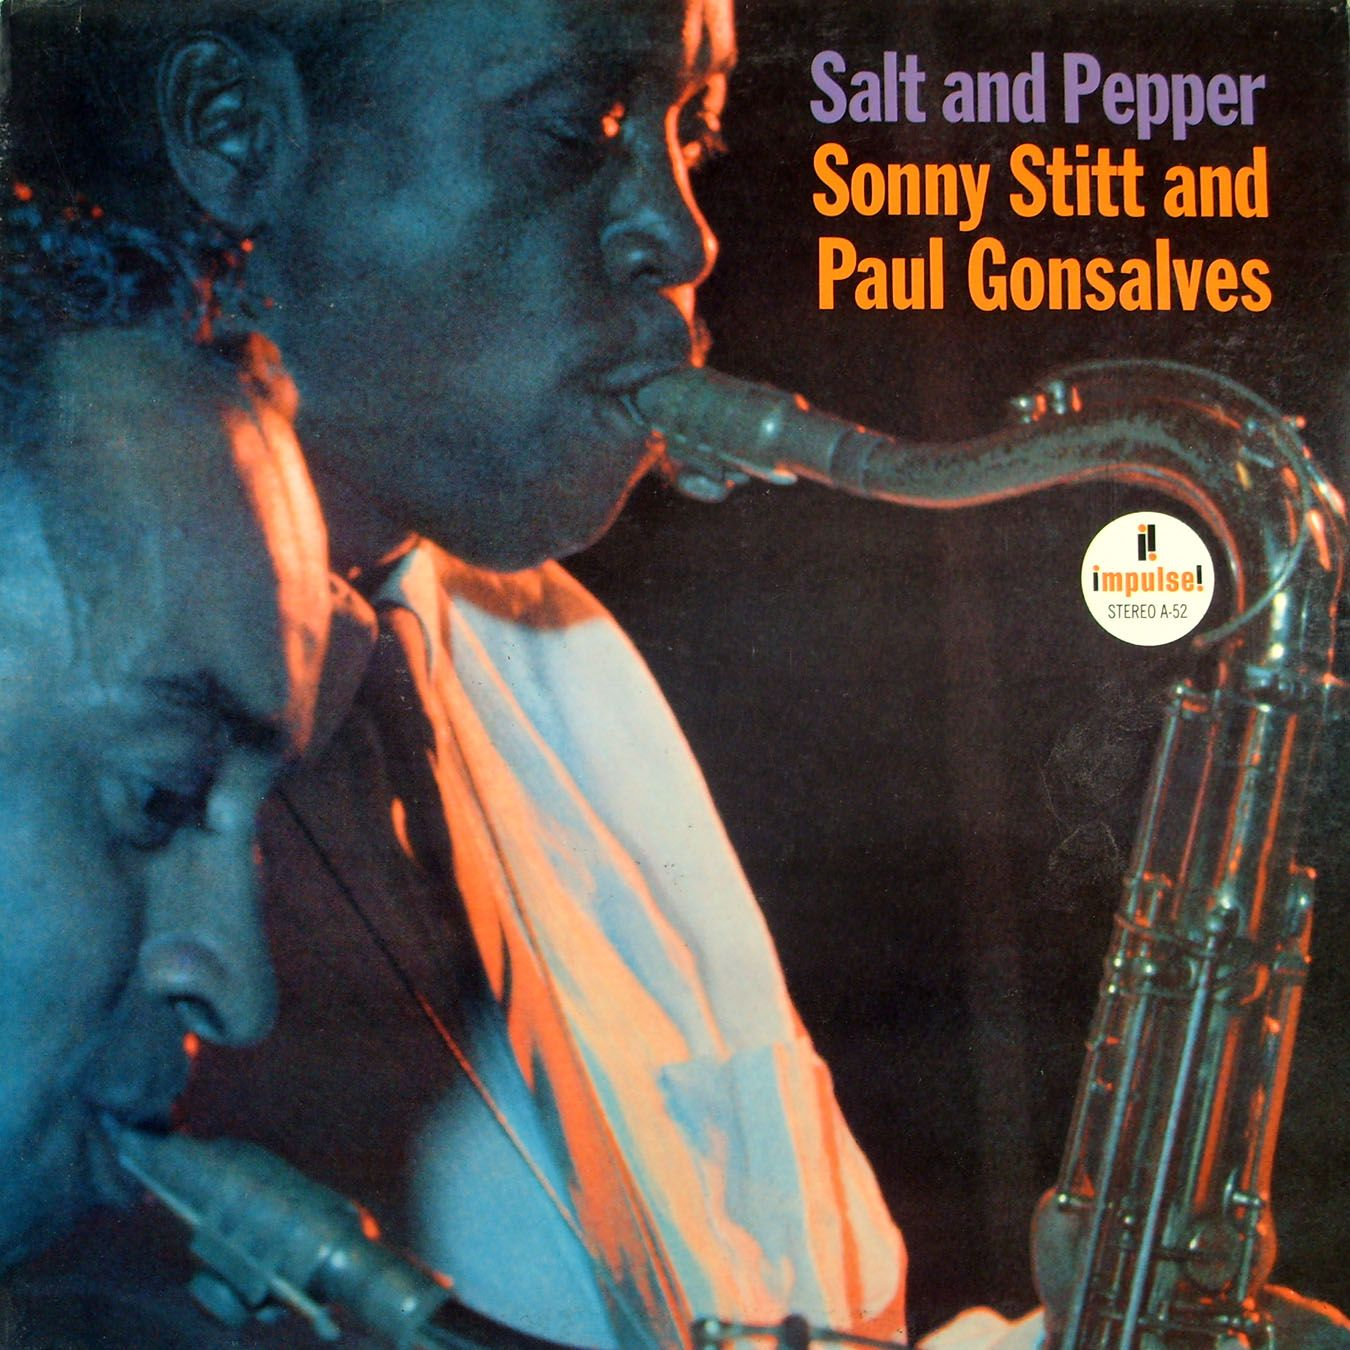 A52 Sonny Stitt And Paul Gonsalves - Salt And Pepper (1964)